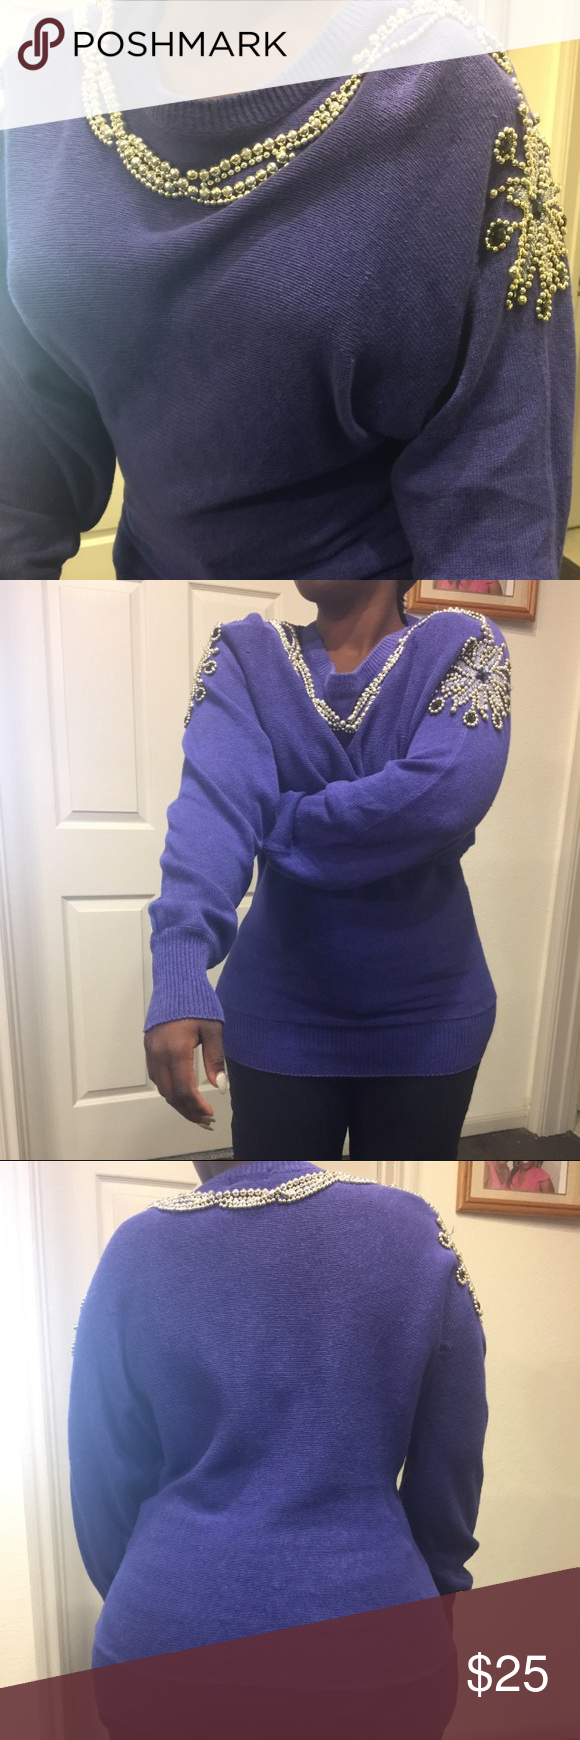 Purple jewel sweater. Purple cotton sweater embellished. Size Medium. The price is 25 dollars. Sweaters